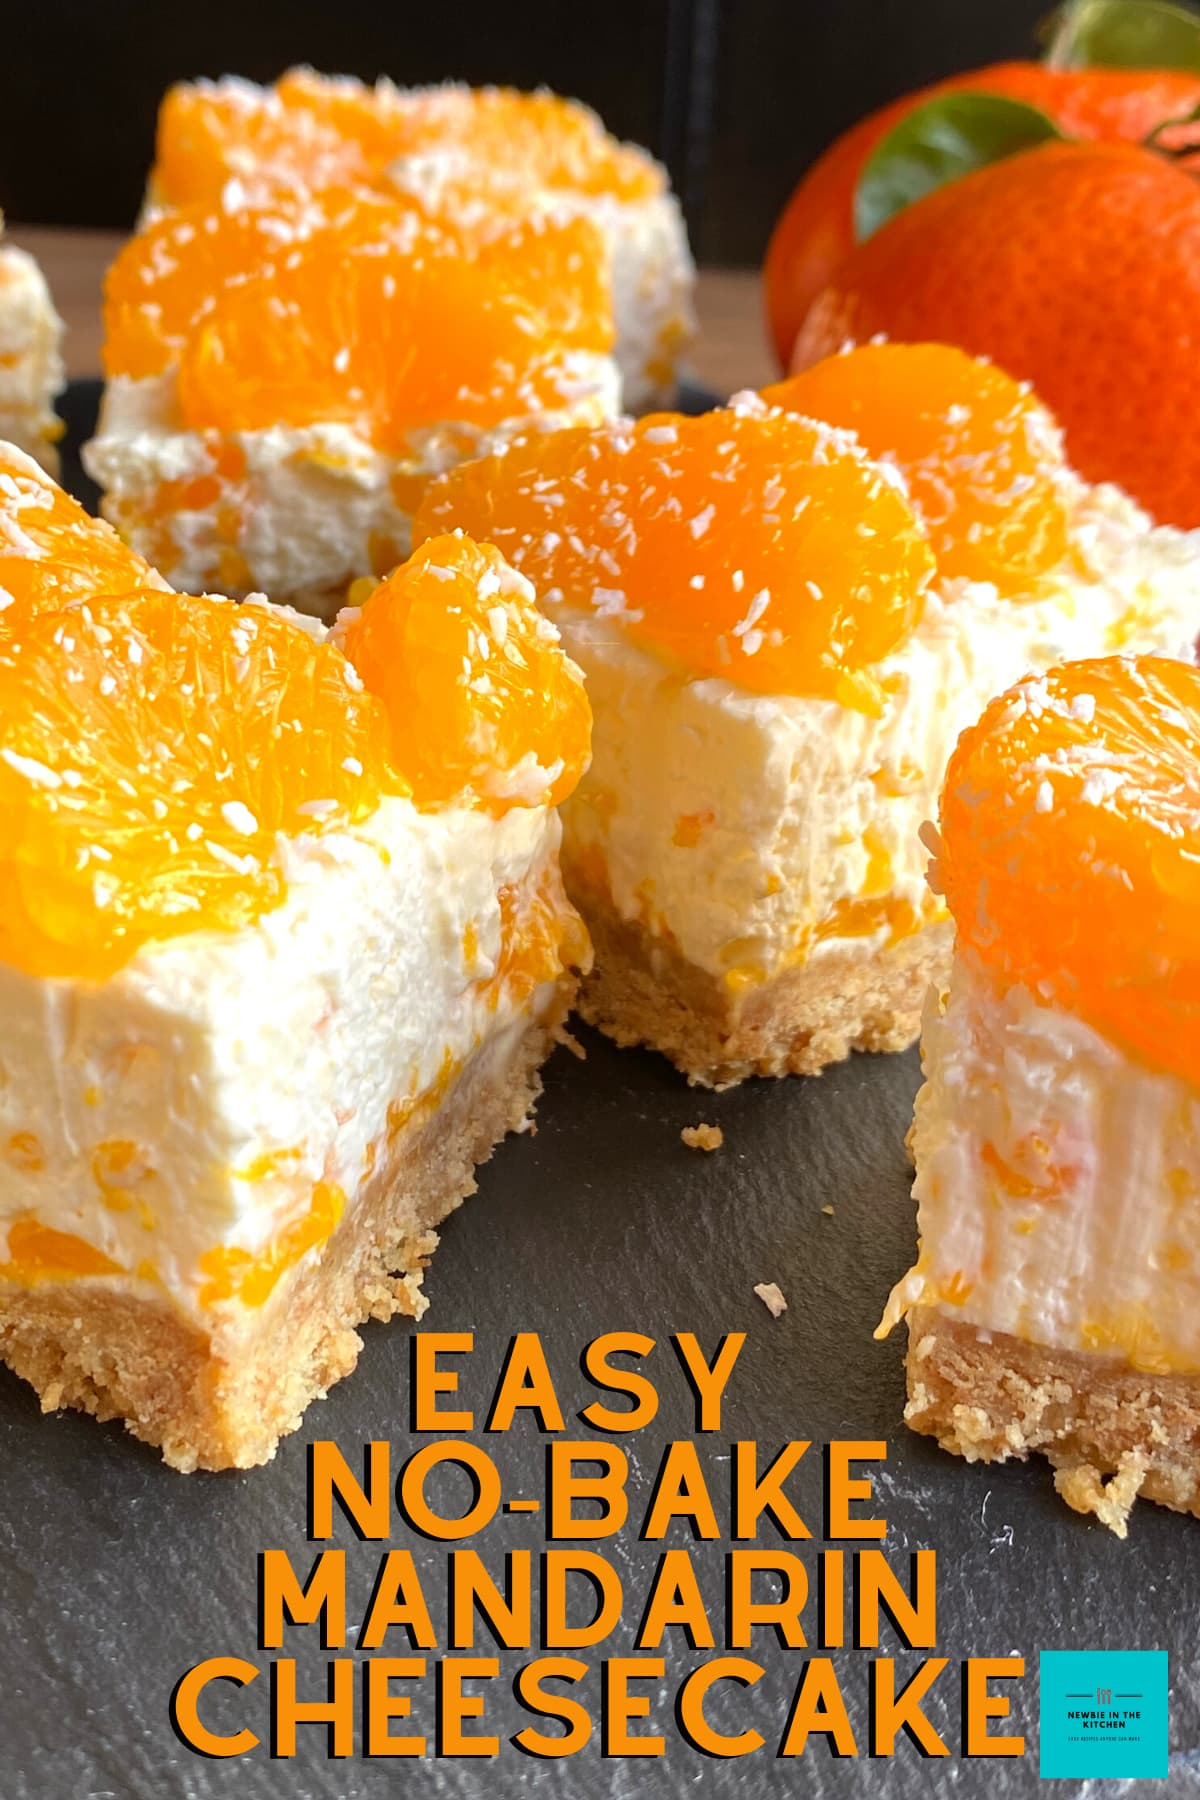 Easy No-Bake Mandarin Cheesecake. A delicious No Bake Dessert, bursting with juicy mandarins in every bite. Easy to make, simple recipe with regular ingredients